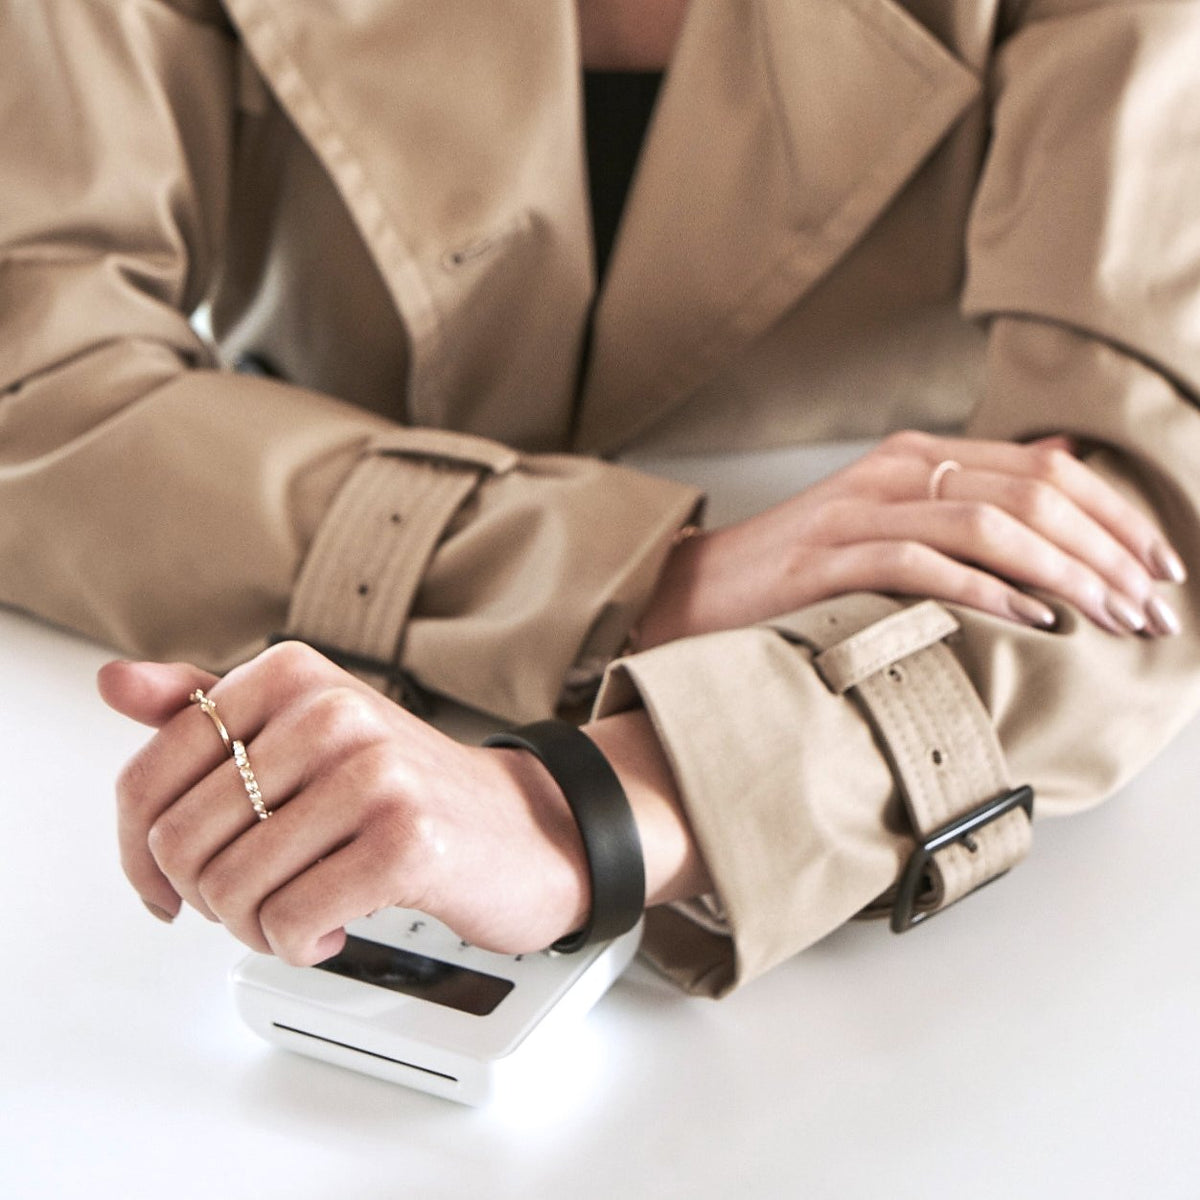 Leather Contactless Payment Bracelet: Black on Tan Contactless Payment Bracelet Tovi Sorga